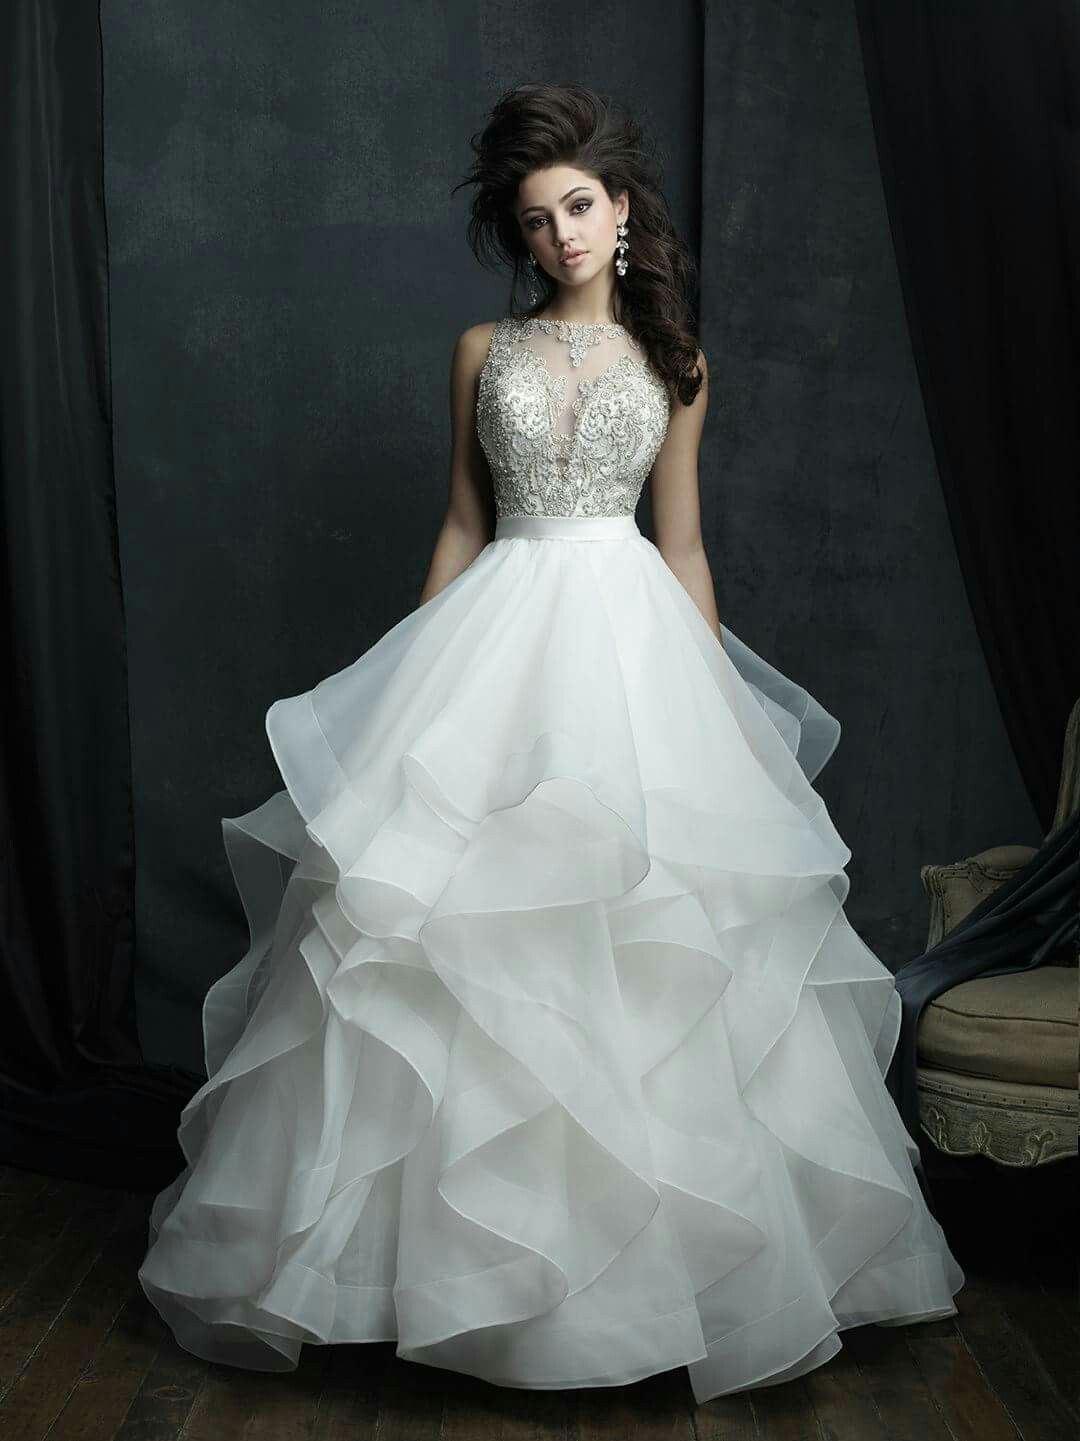 Courthouse wedding dress plus size  Pin by Lex Brown on Wedding Dress  Pinterest  Wedding dress